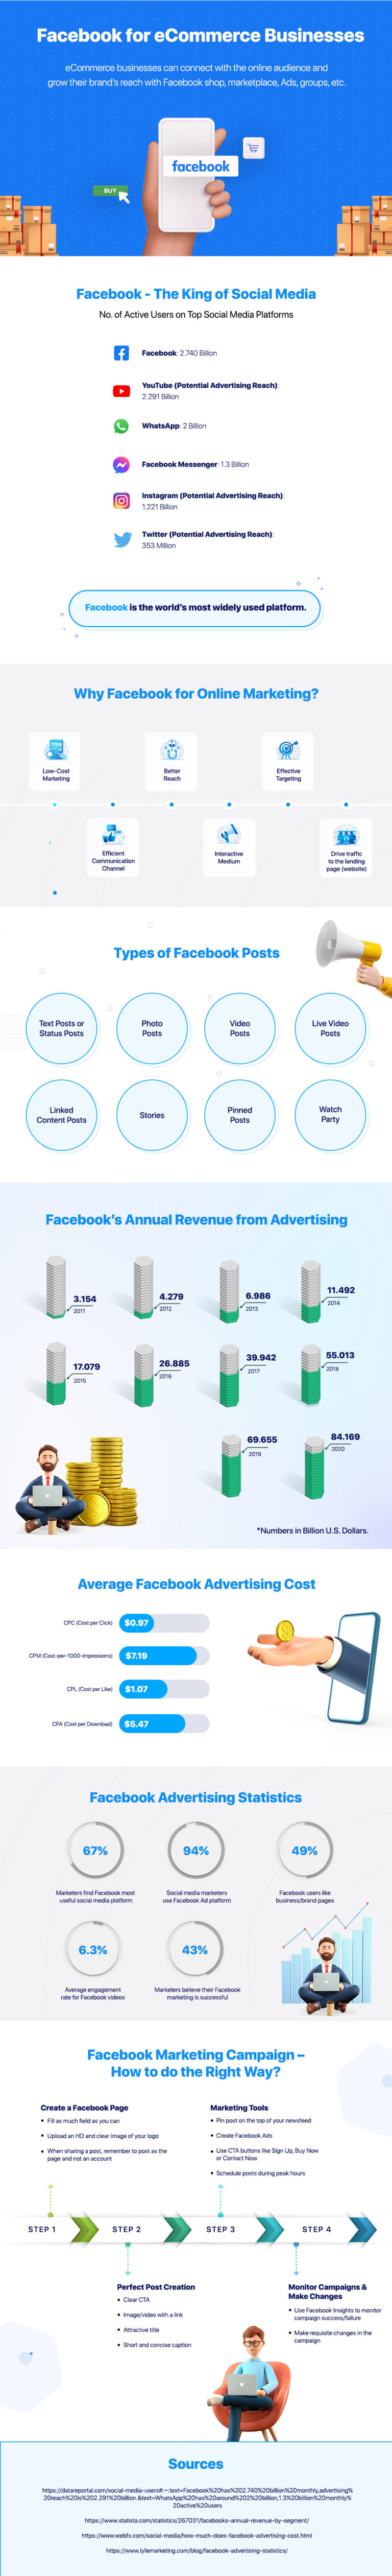 Facebook for eCommerce Business